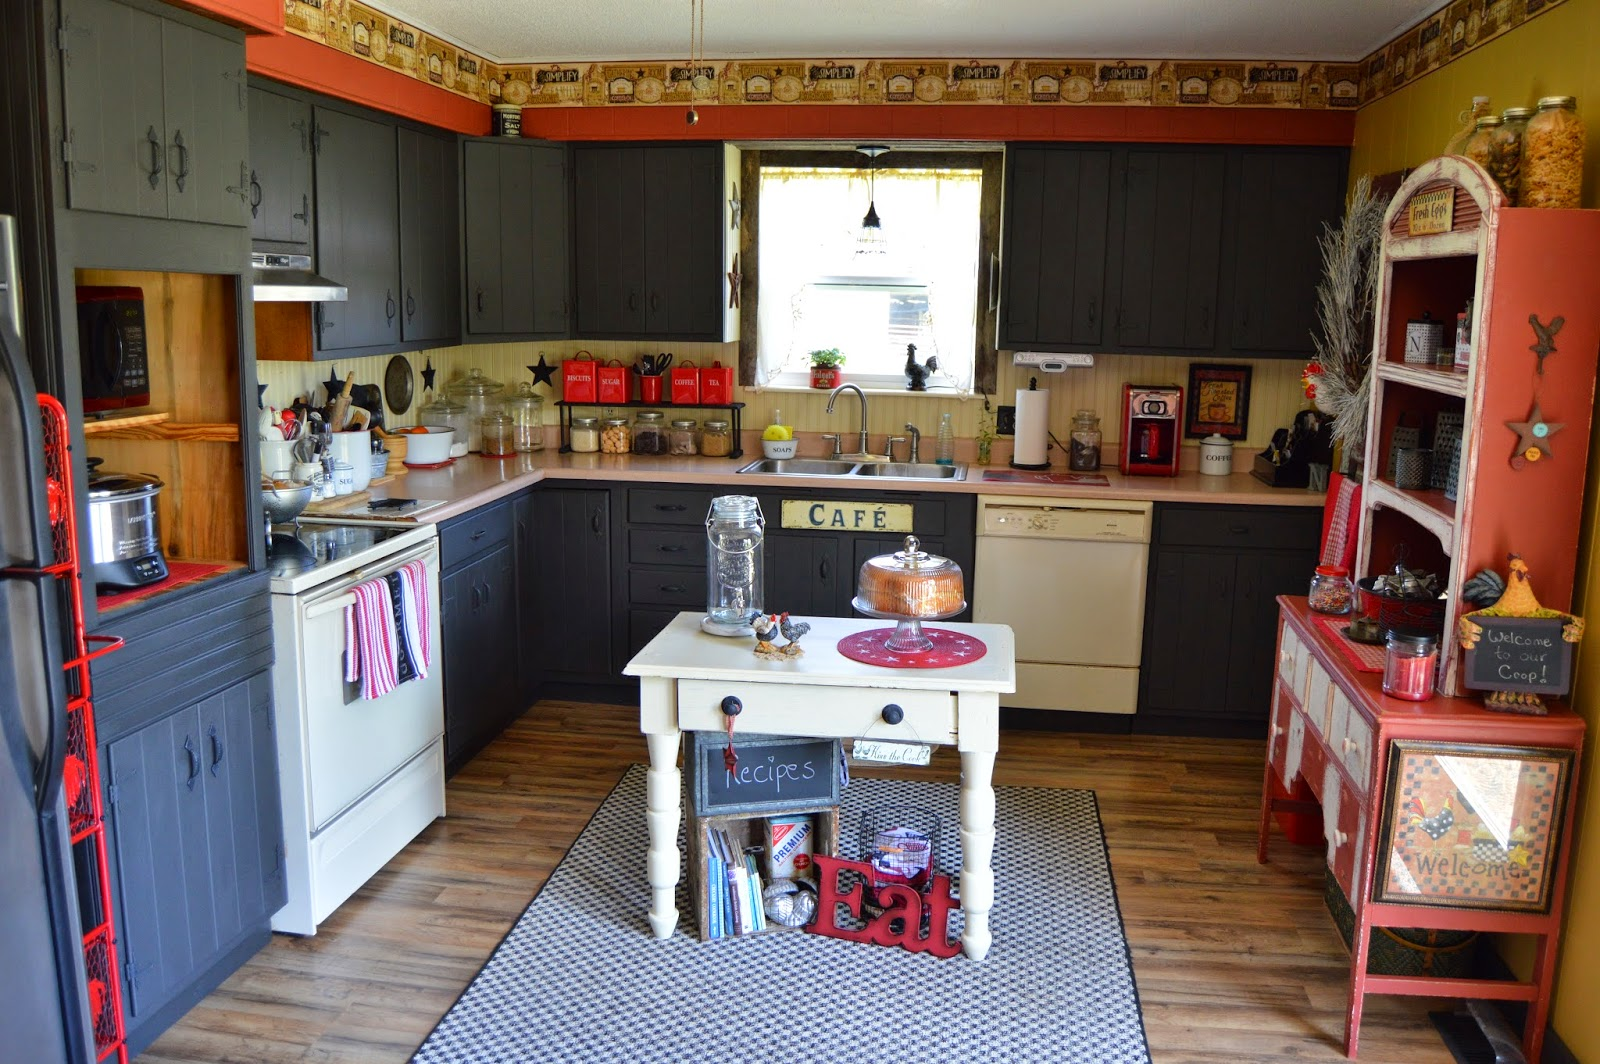 How To Paint Kitchen Cabinets Without Streaks Country Pleasures